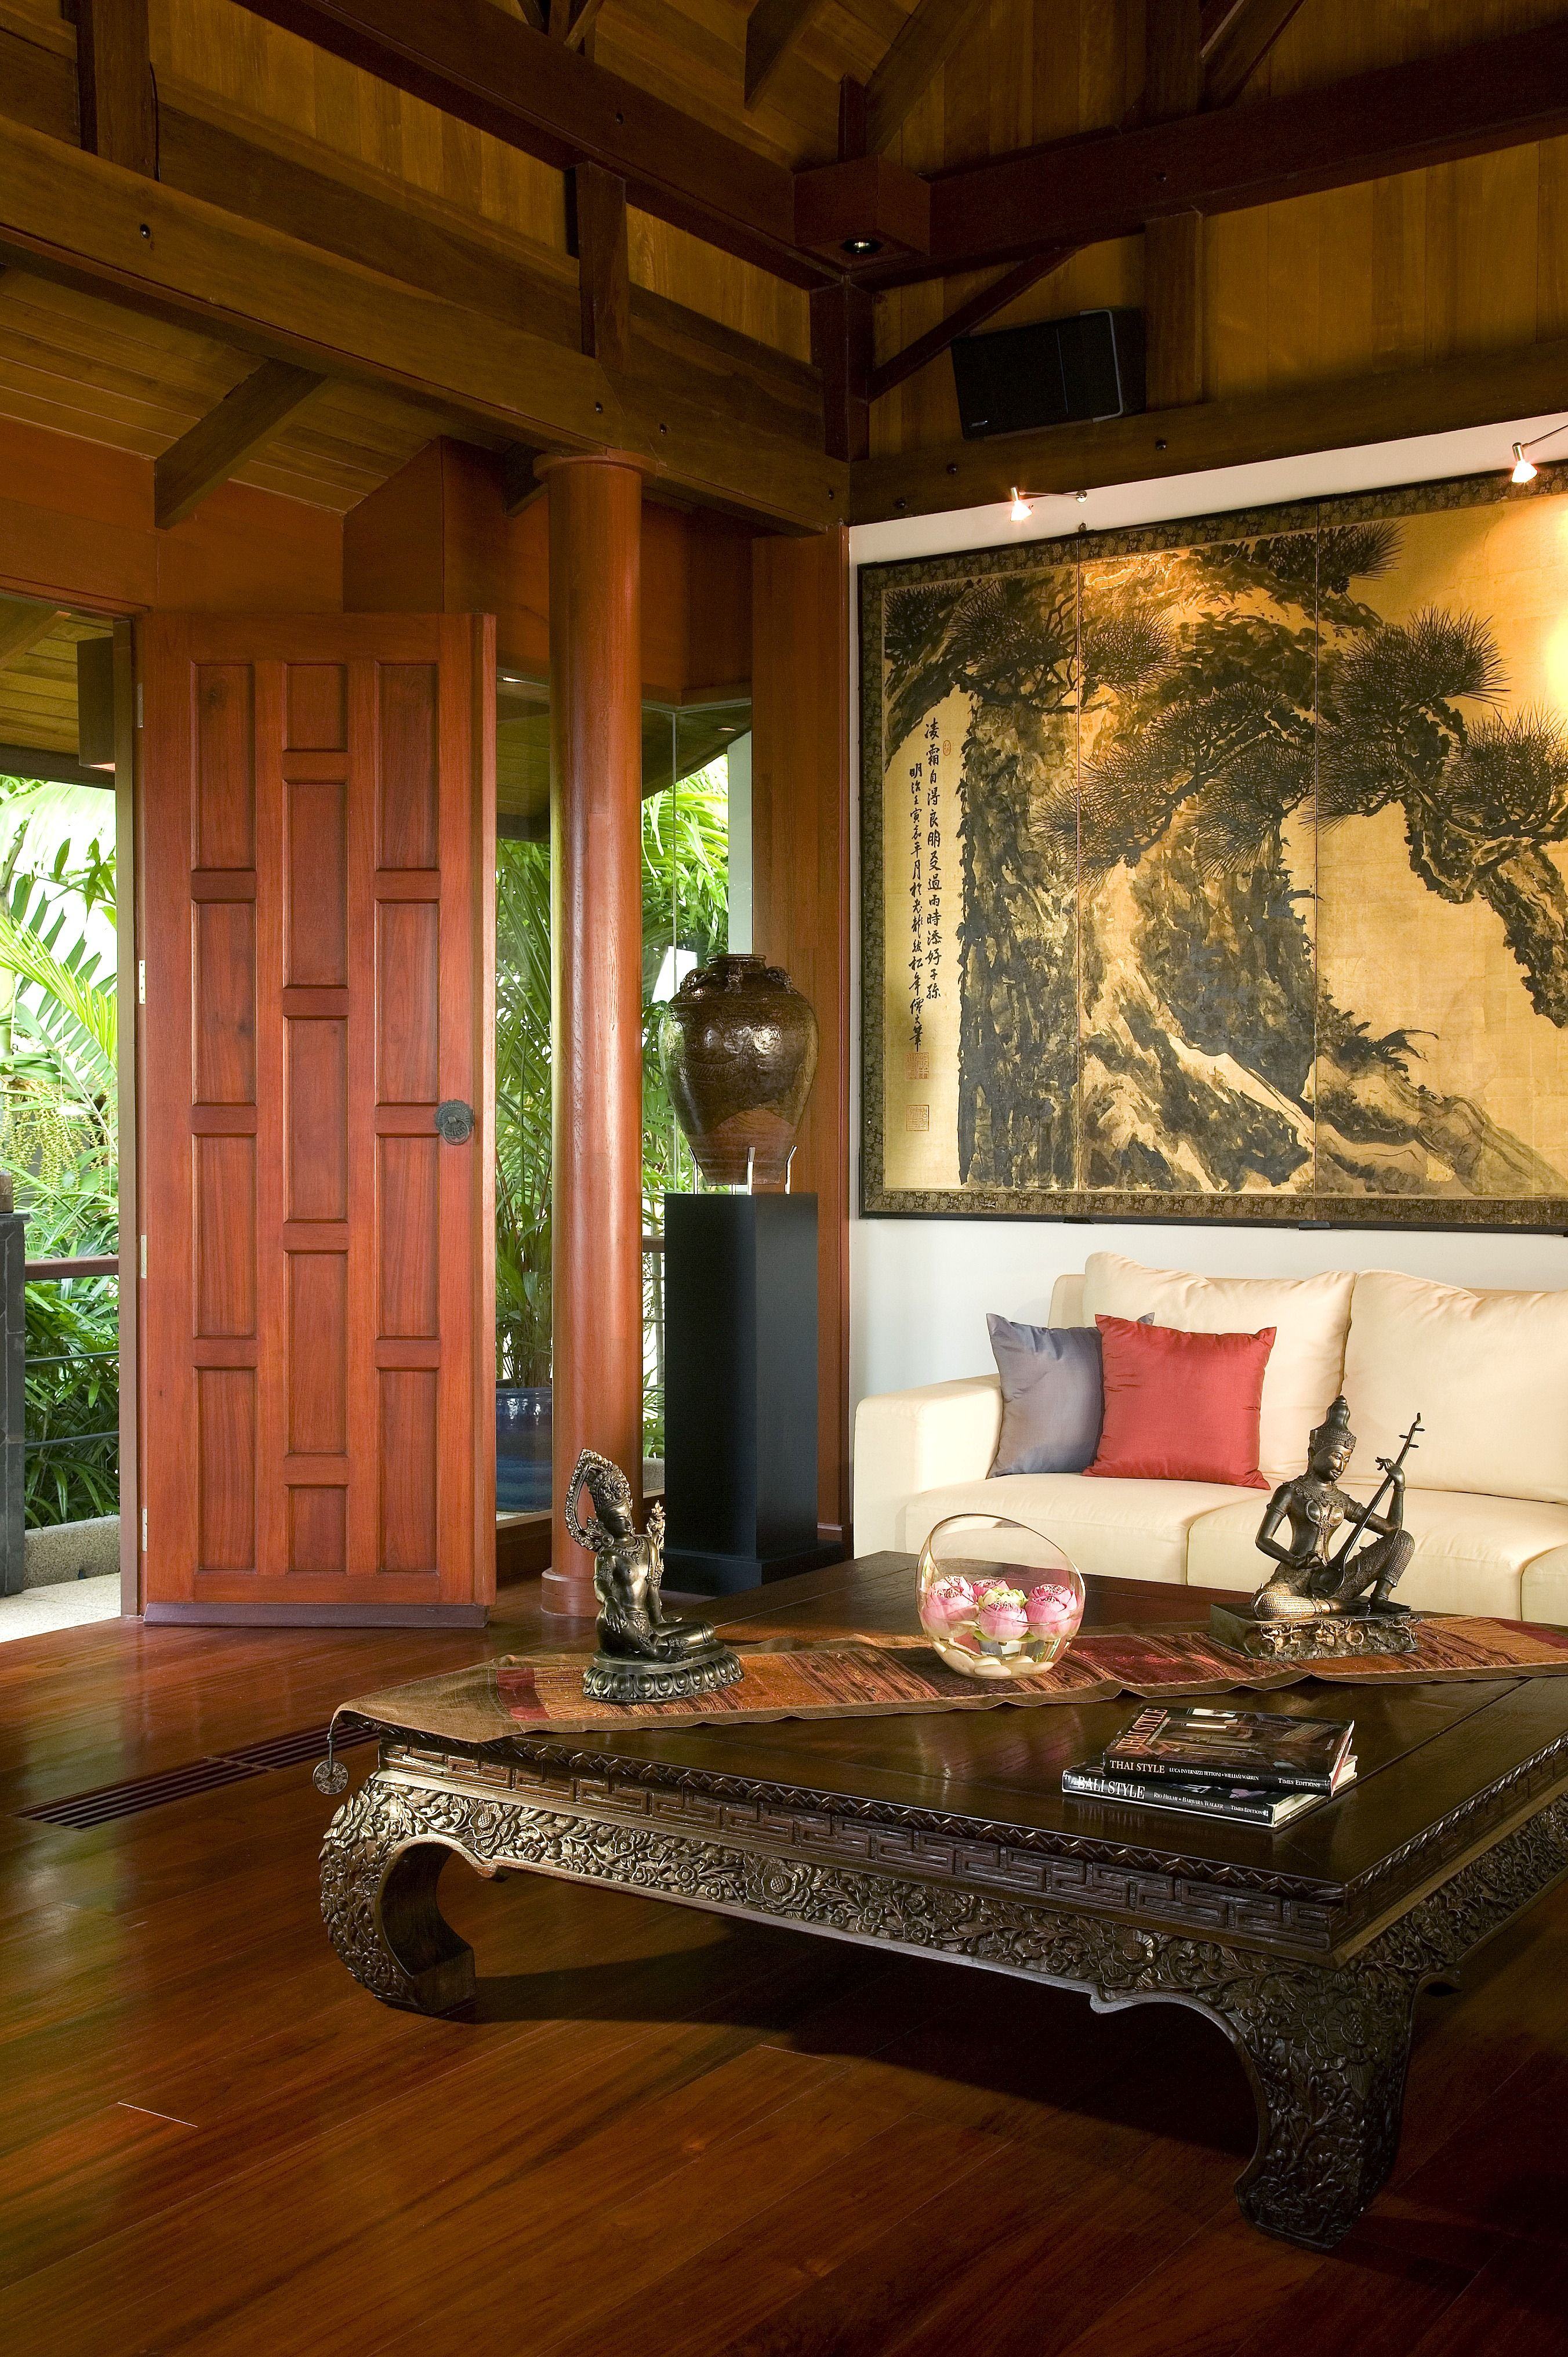 Thai Decorating Ideas An Asian Style Living Room With A Tall Stained Wood